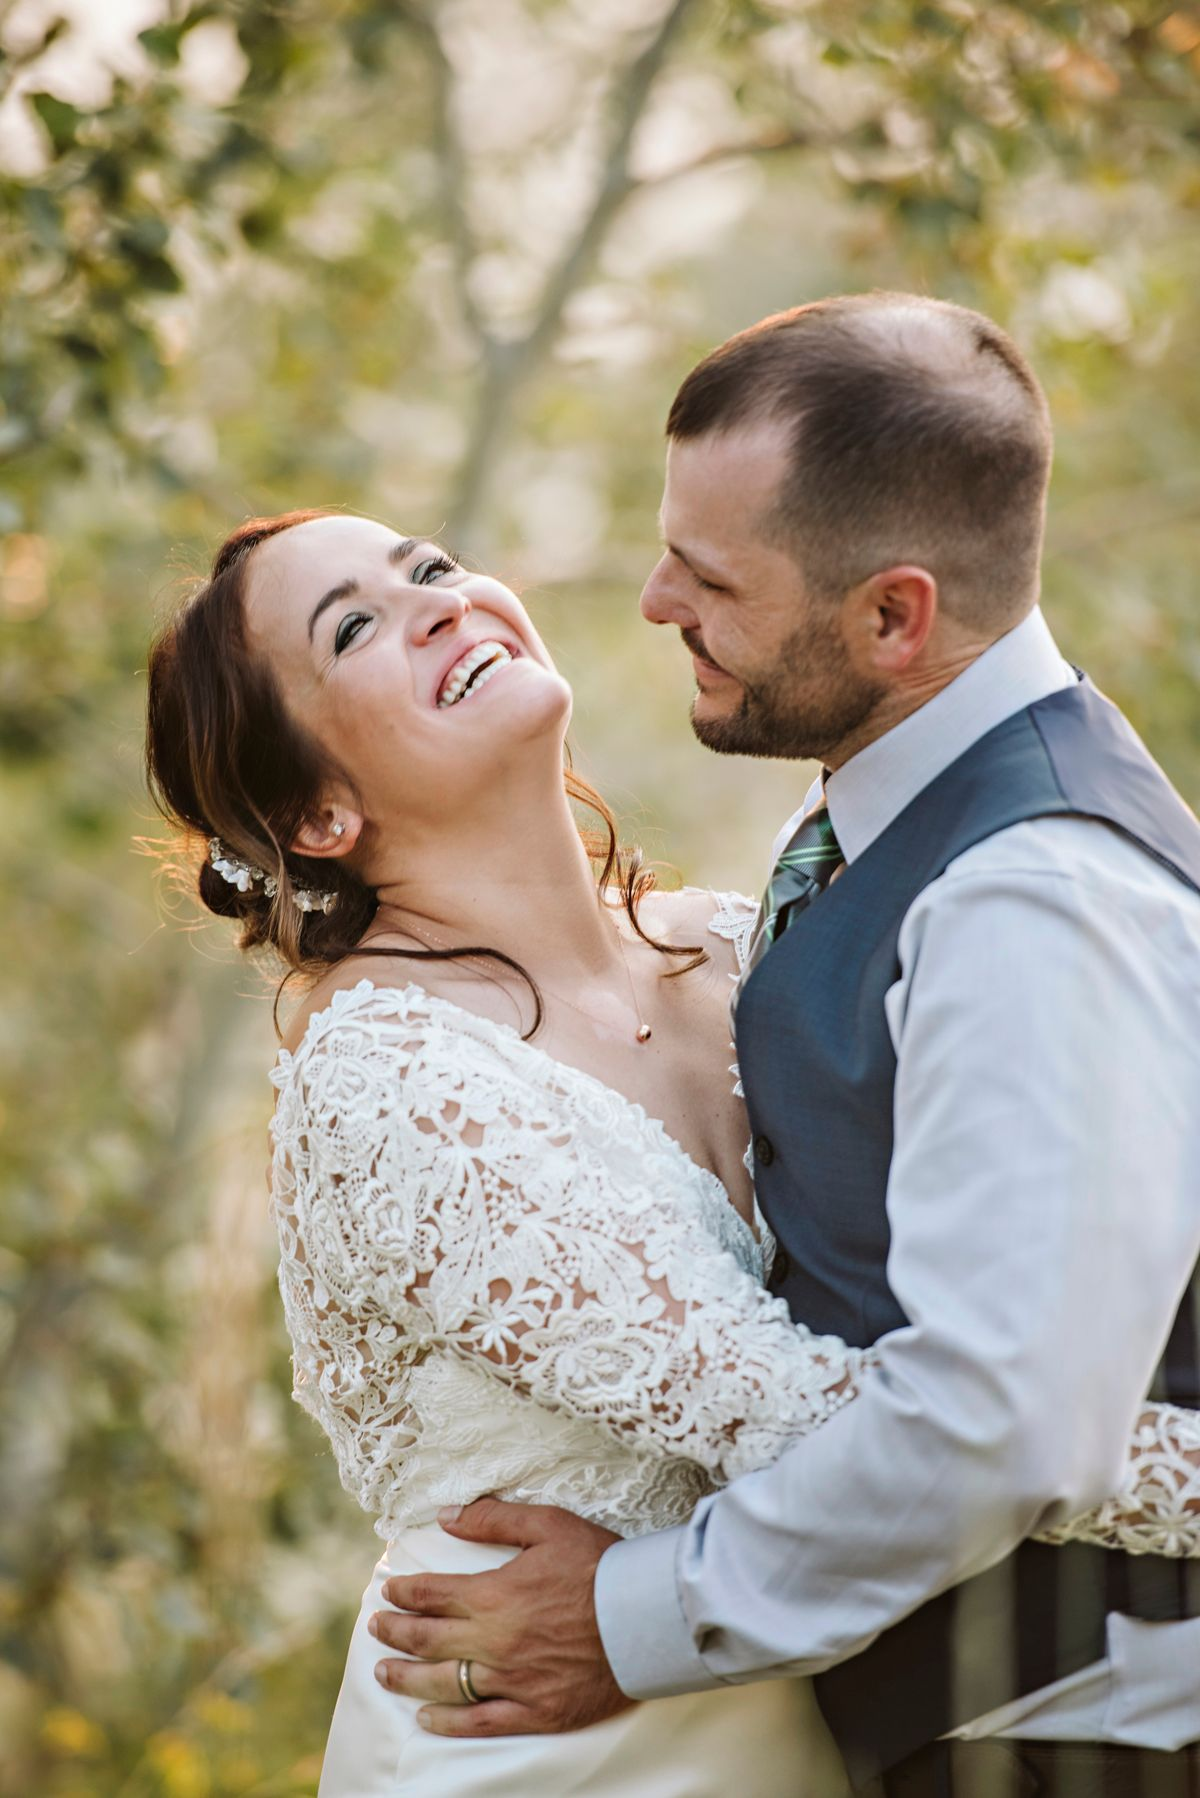 Bride laughs as groom adores her